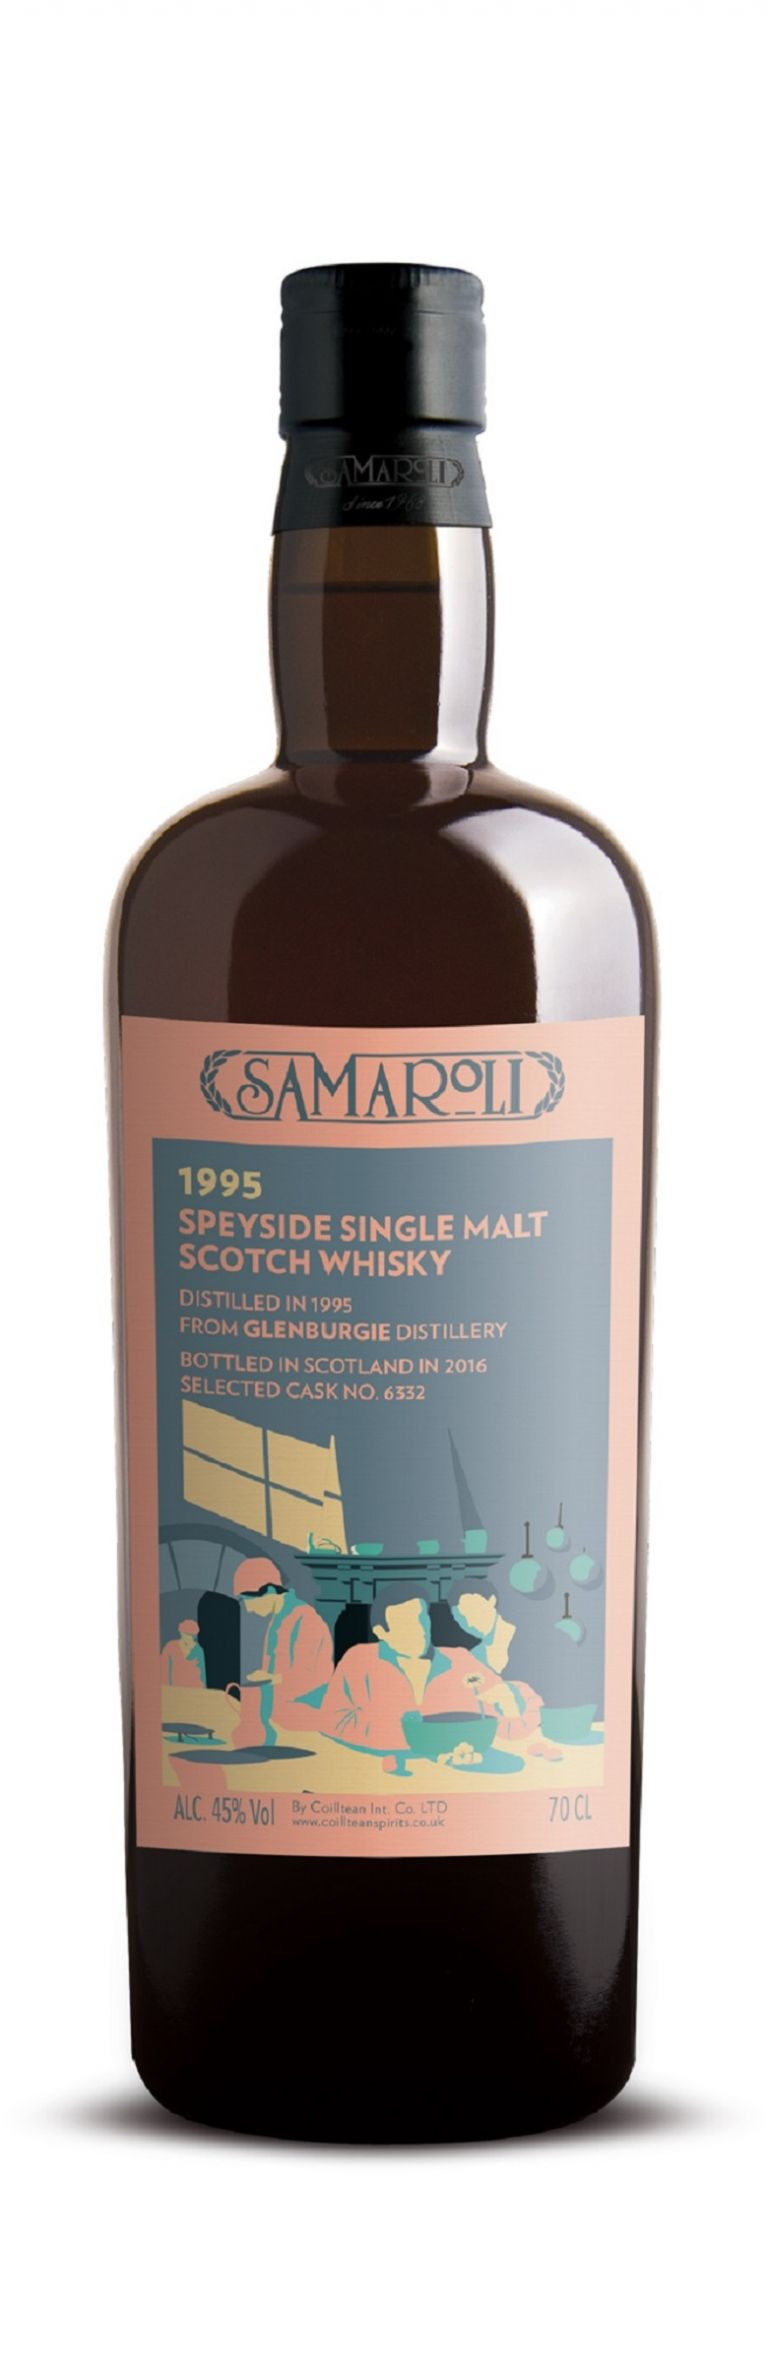 1995 Glenburgie - Speyside Single Malt Scotch Whisky - ed. 2016 - 70 cl